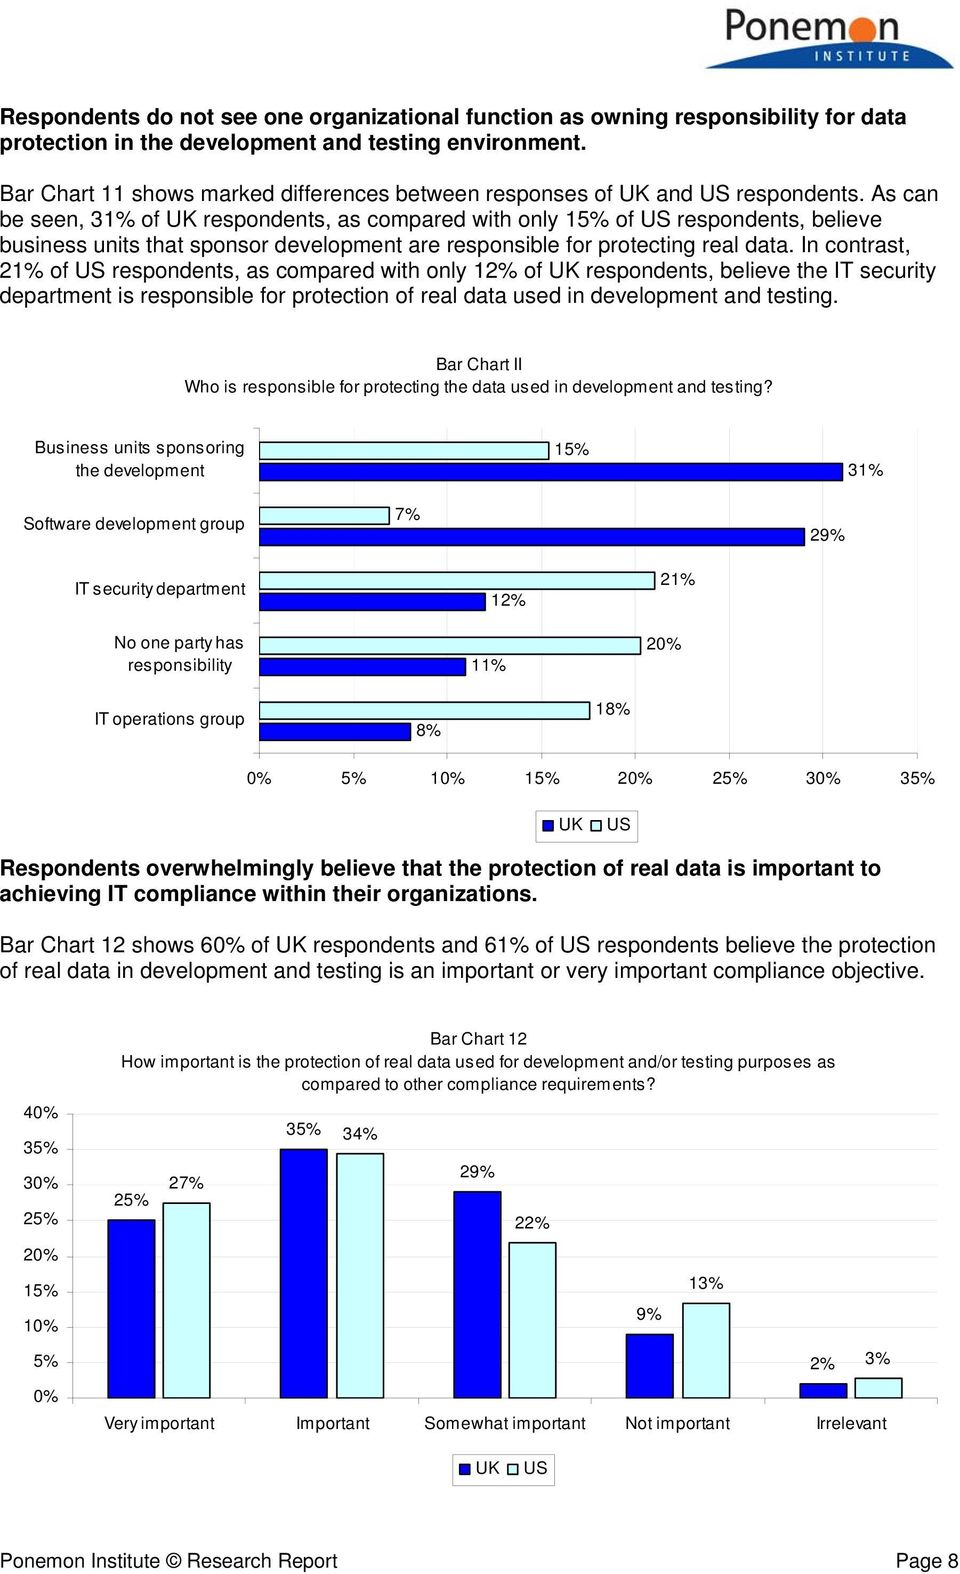 As can be seen, 31% of respondents, as compared with only 15% of respondents, believe business units that sponsor development are responsible for protecting real data.